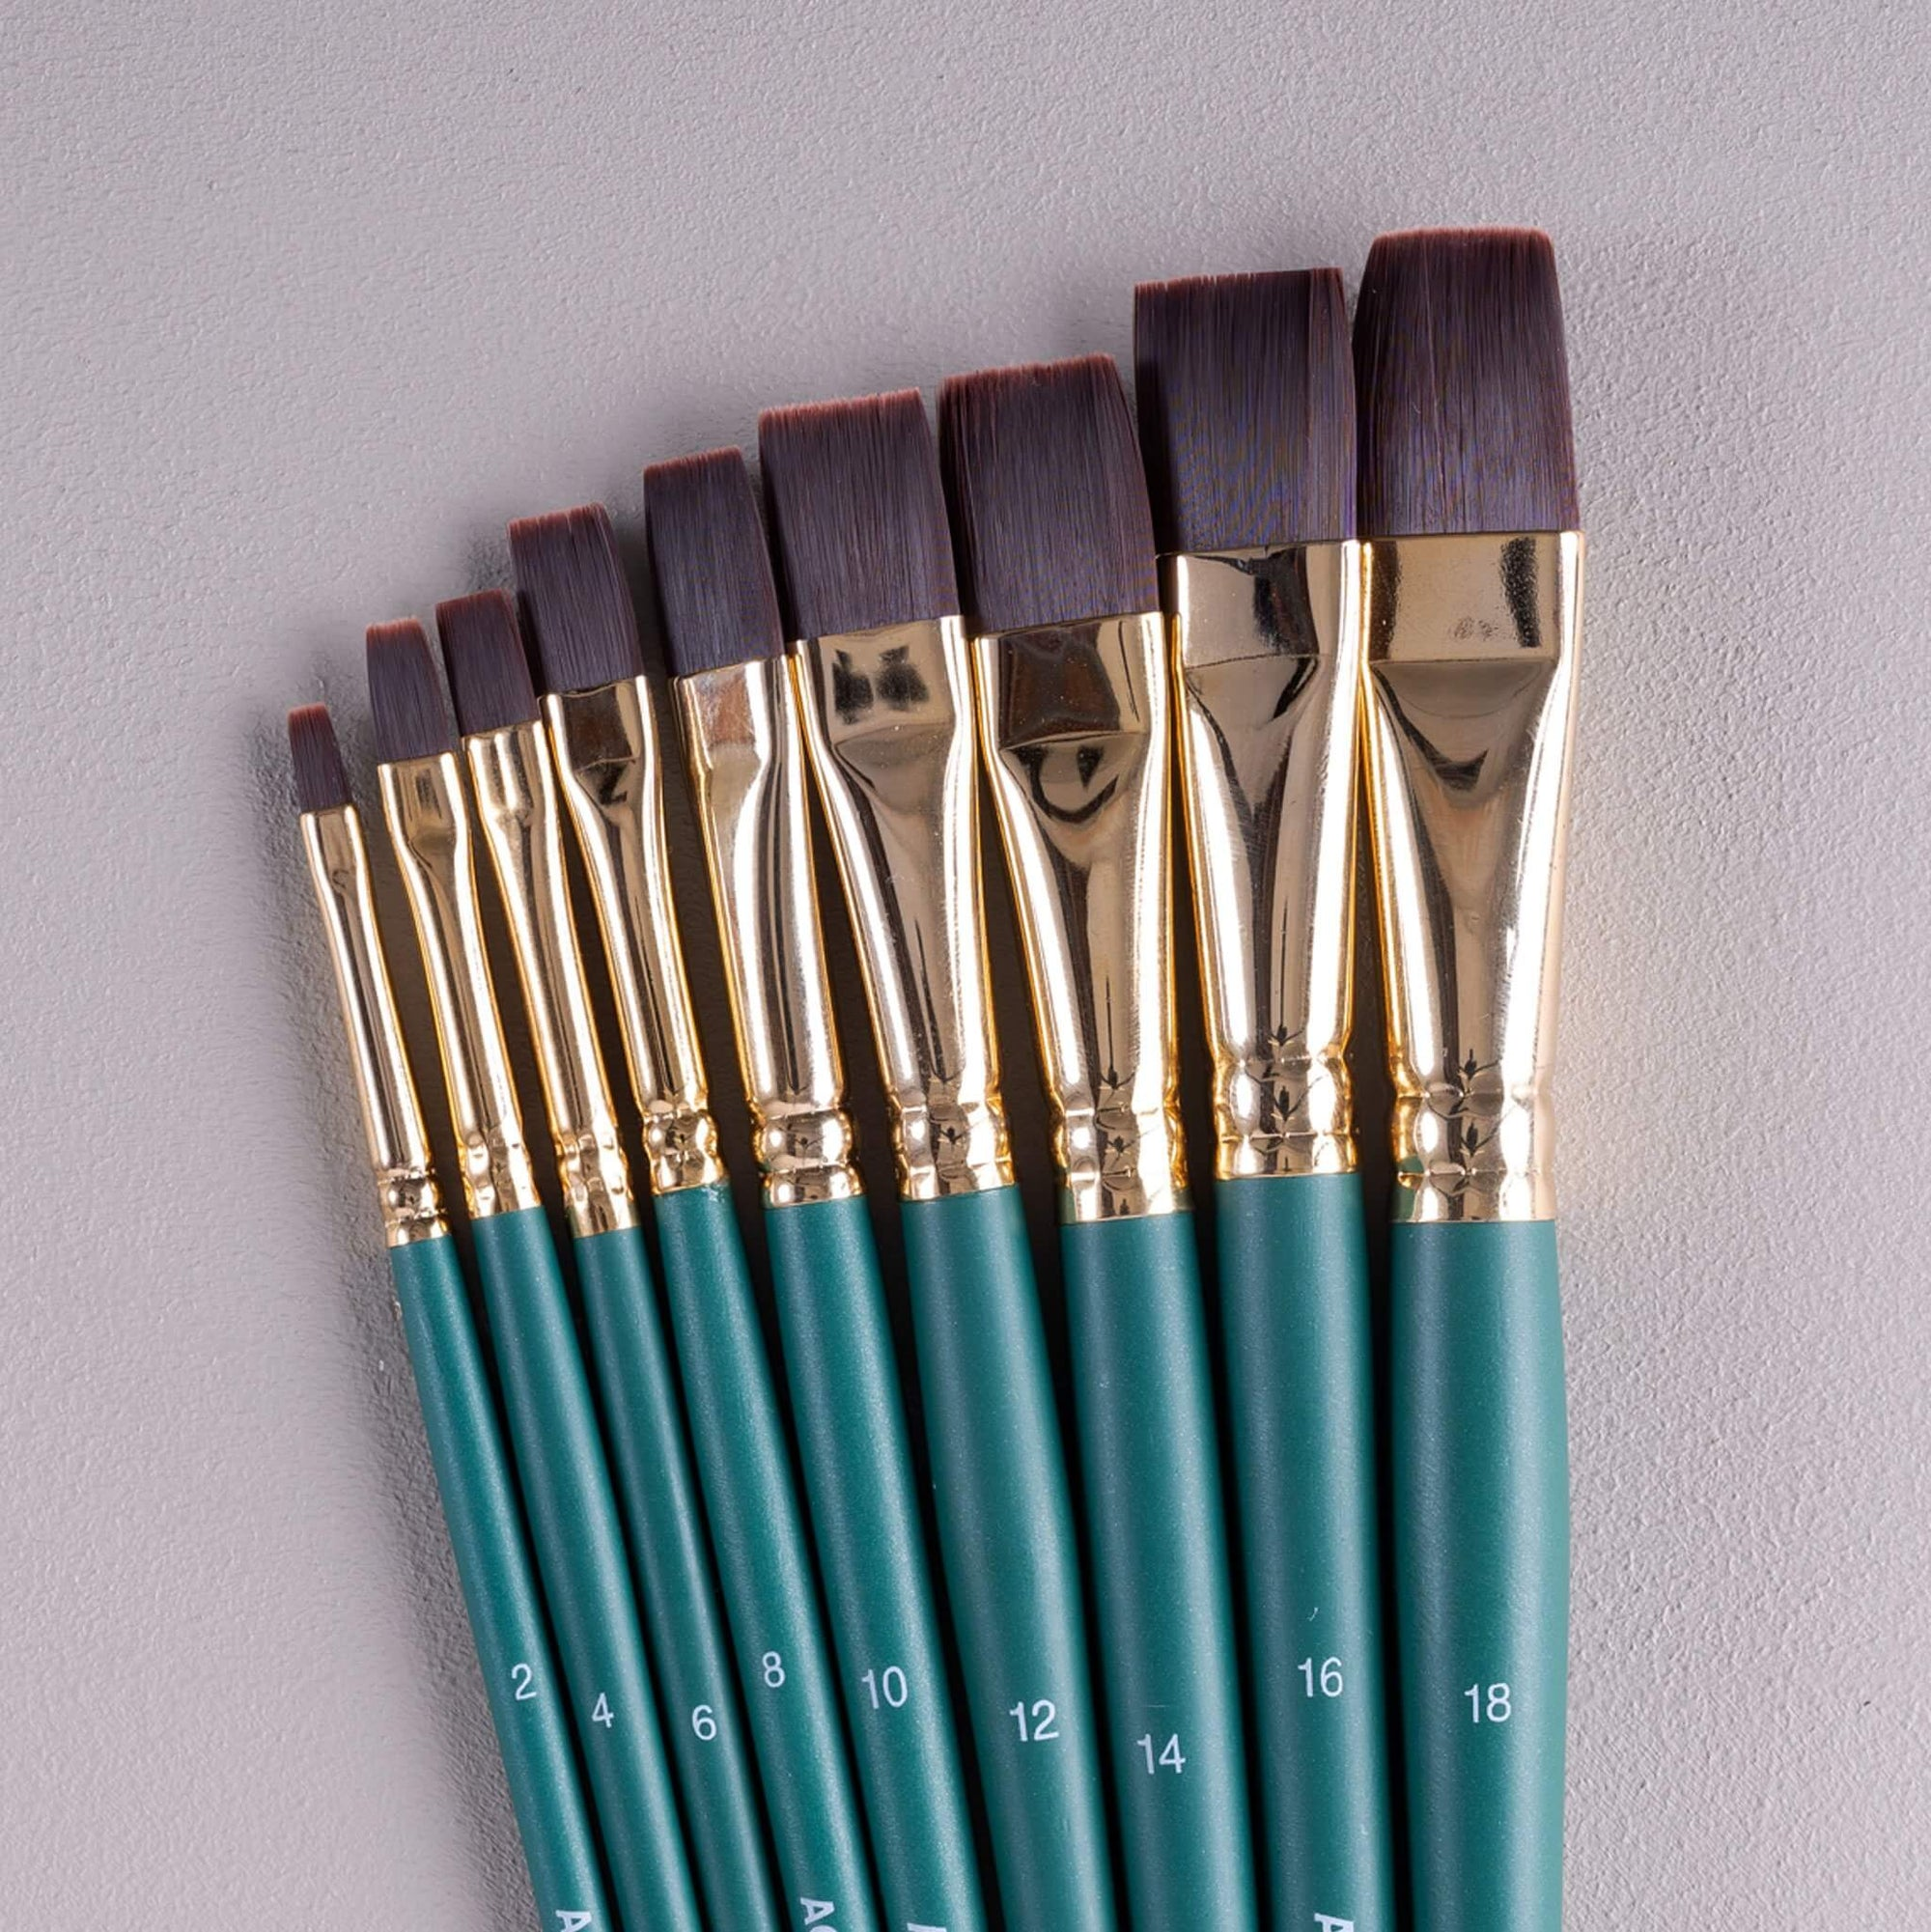 ARTdiscount Short Handled Artists Brushes - Flat